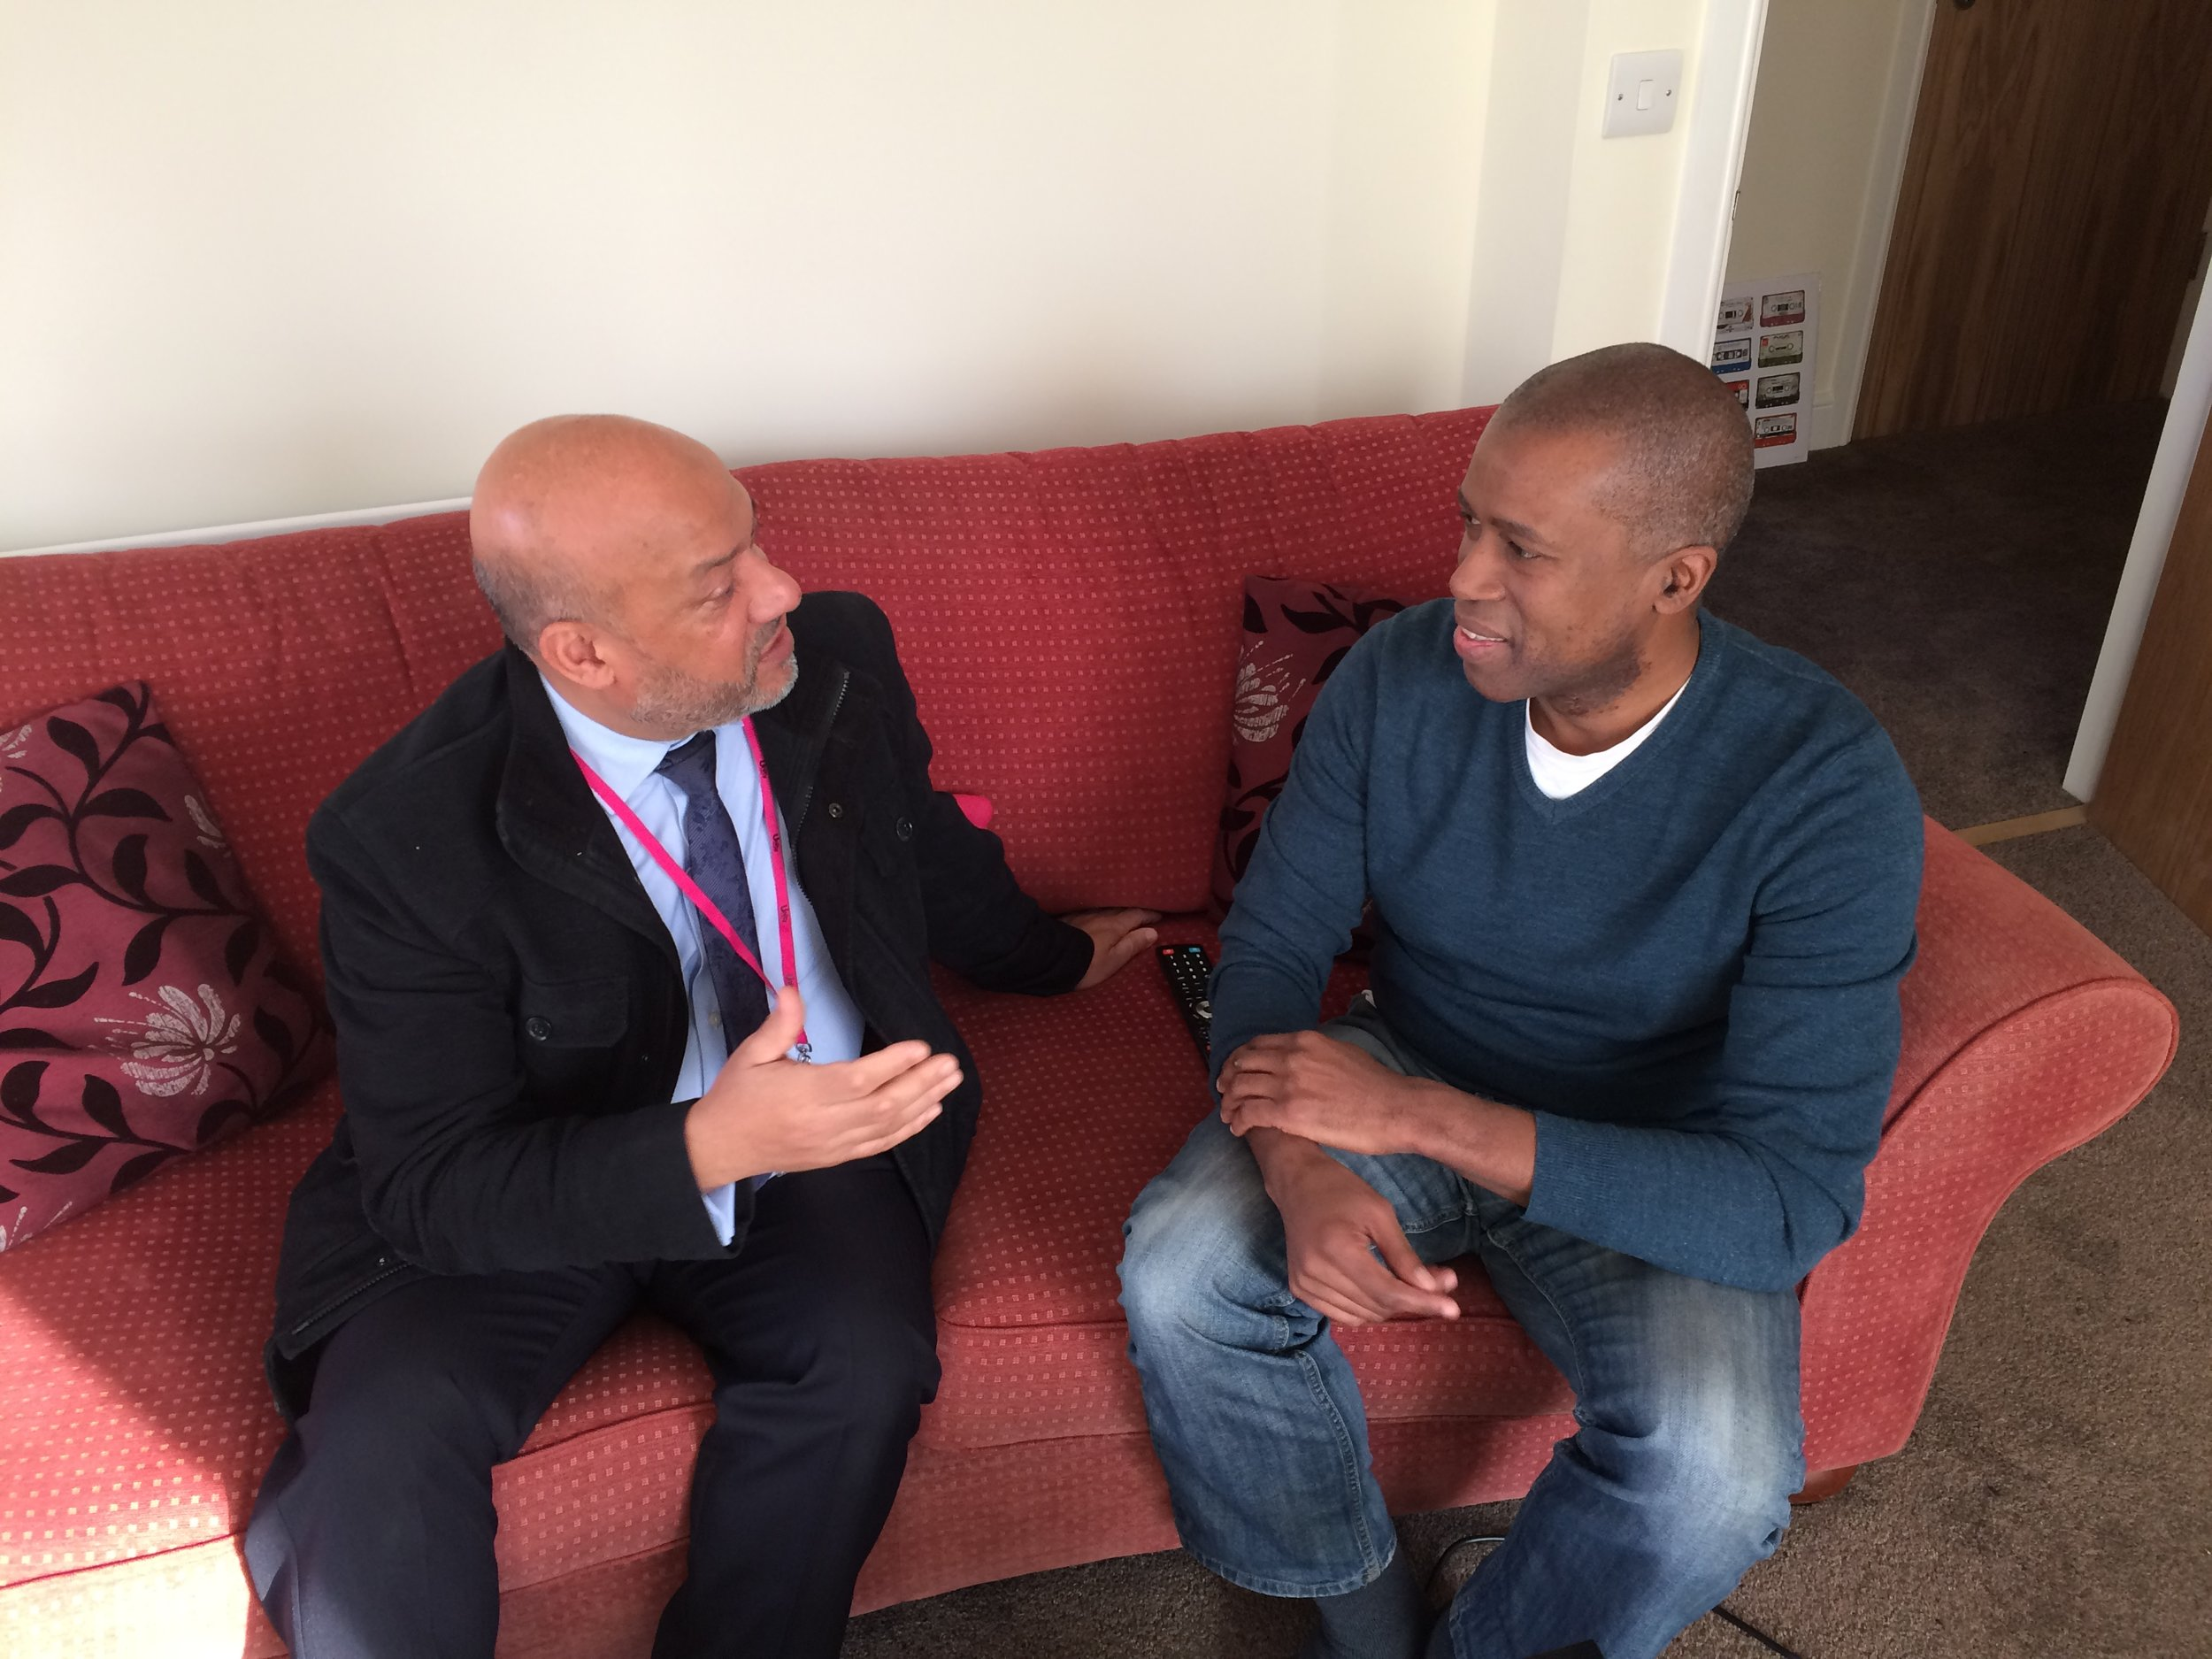 Holborn Court tenant Ian Bailey (right) chats to Unity chief executive Ali Akbor in the living room of his new property in Little London